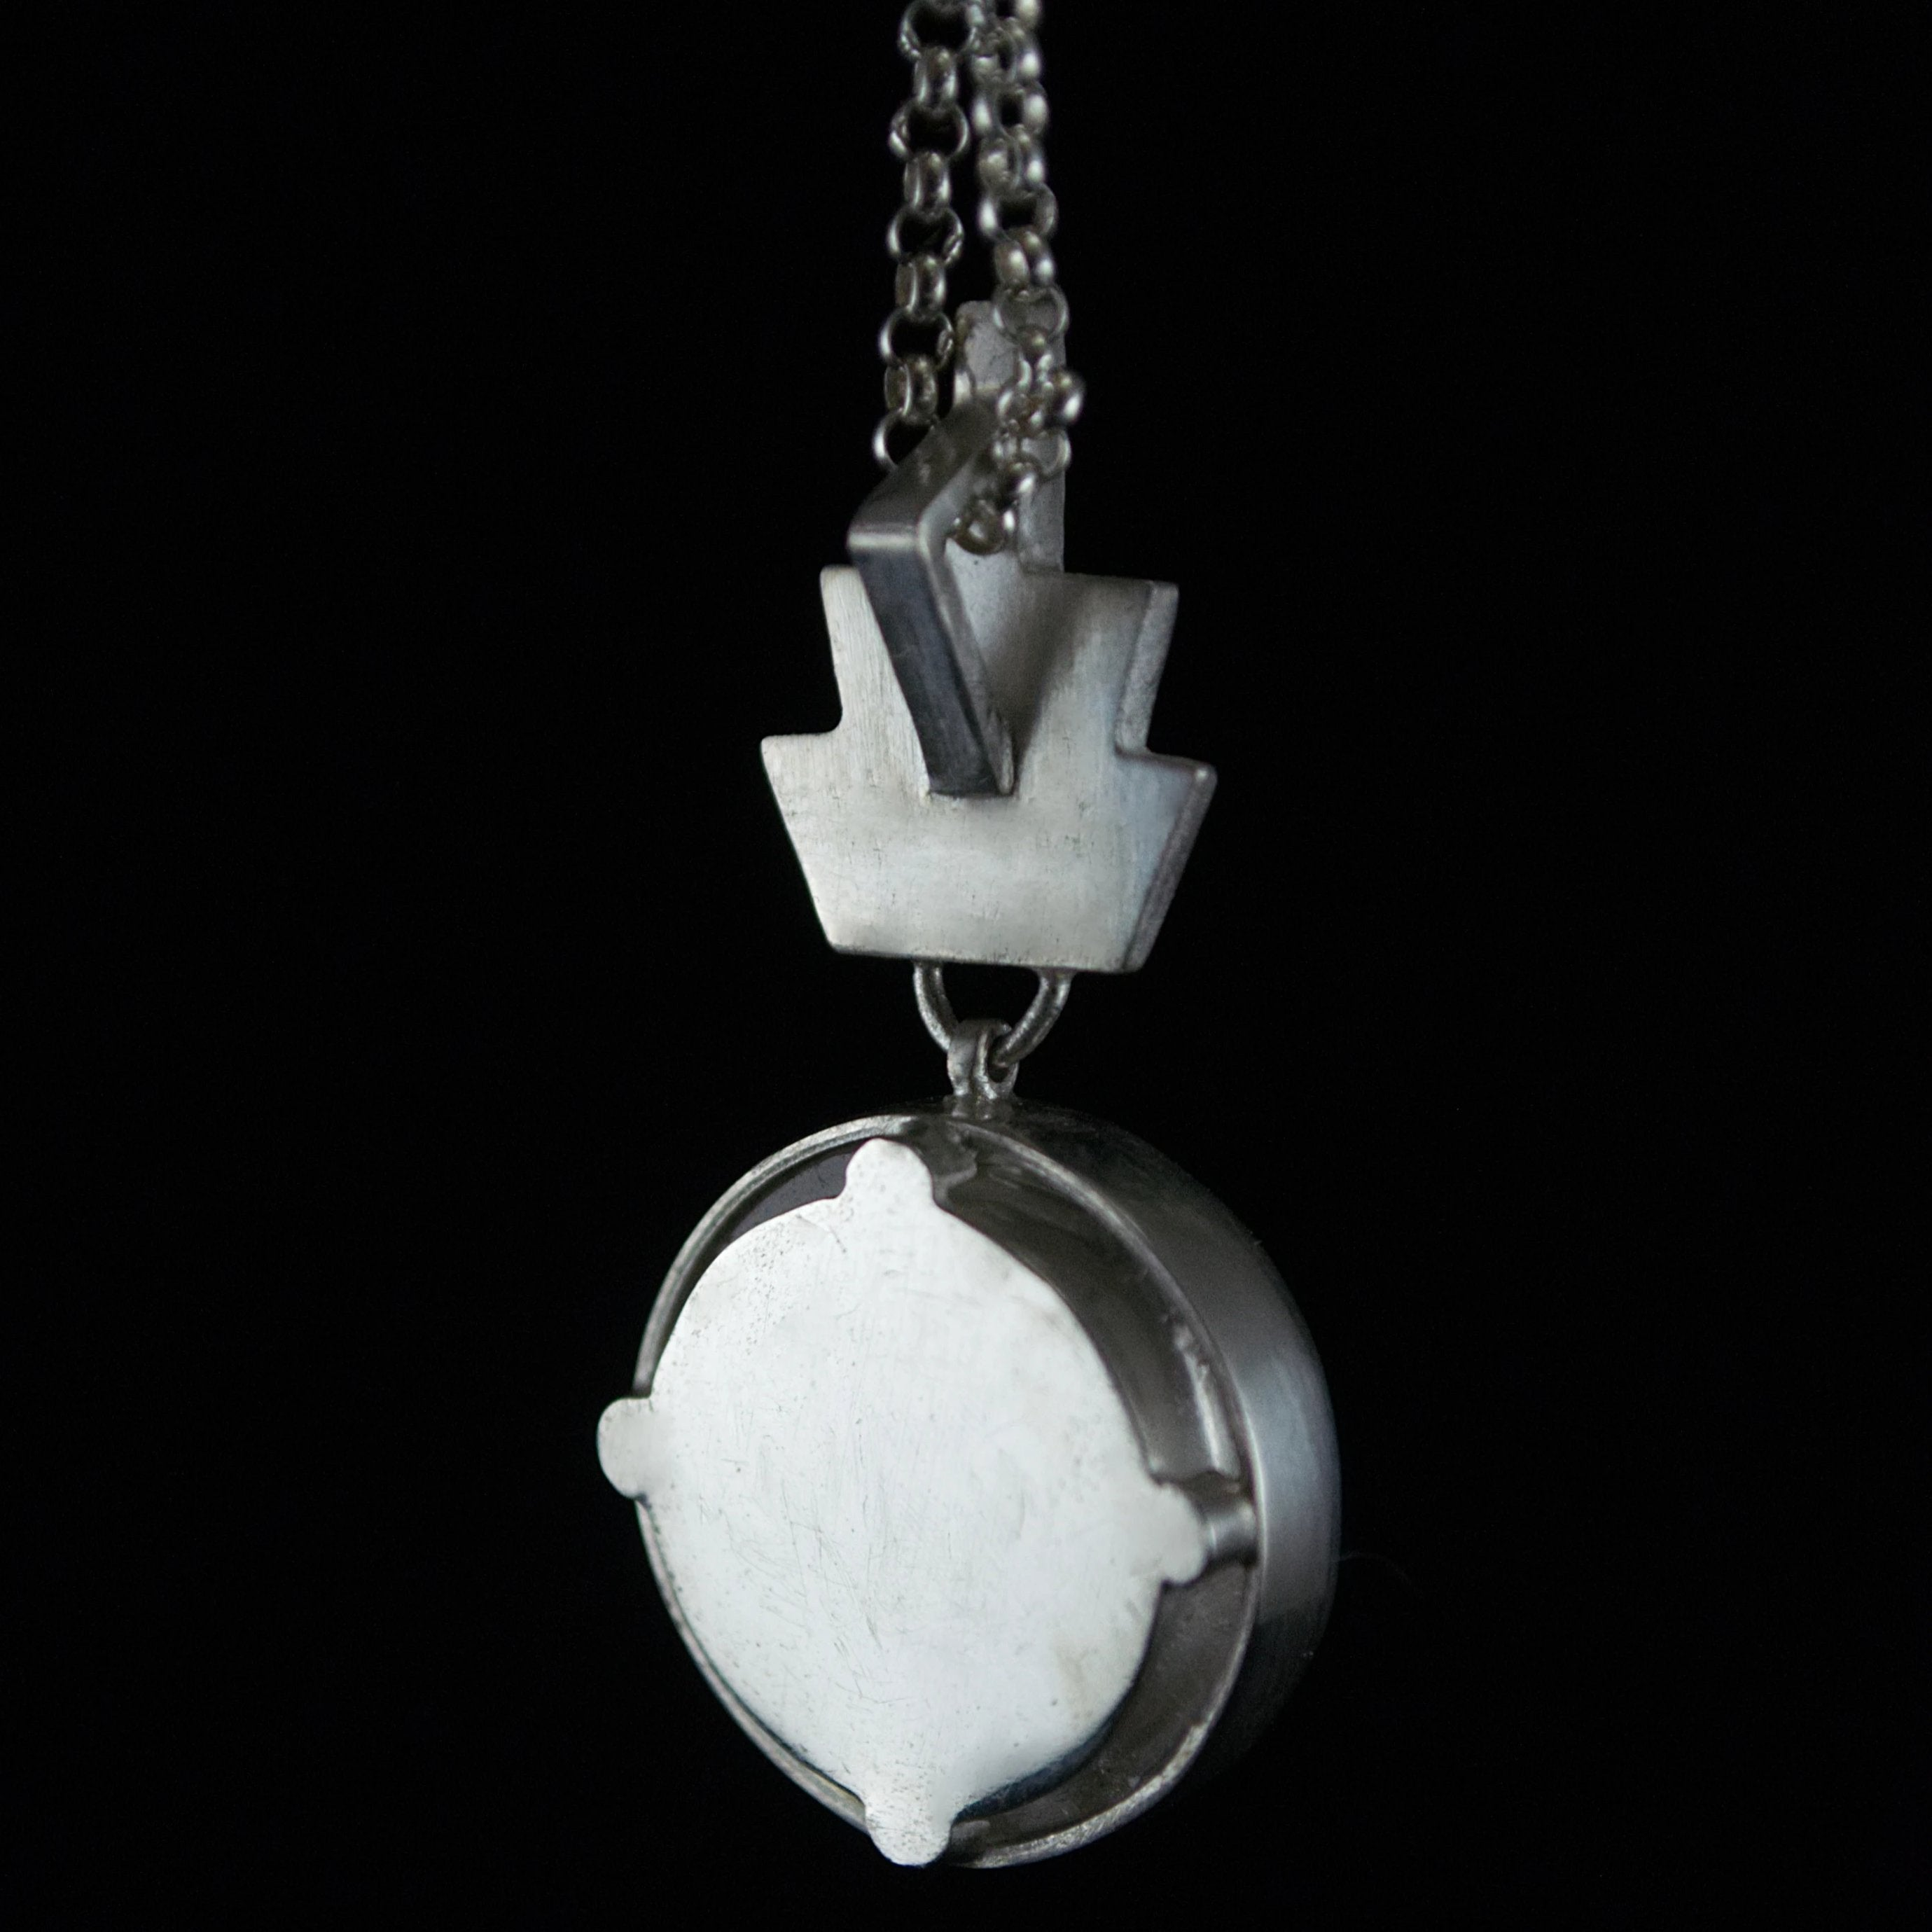 Deco Oculus Pendant in Quartz